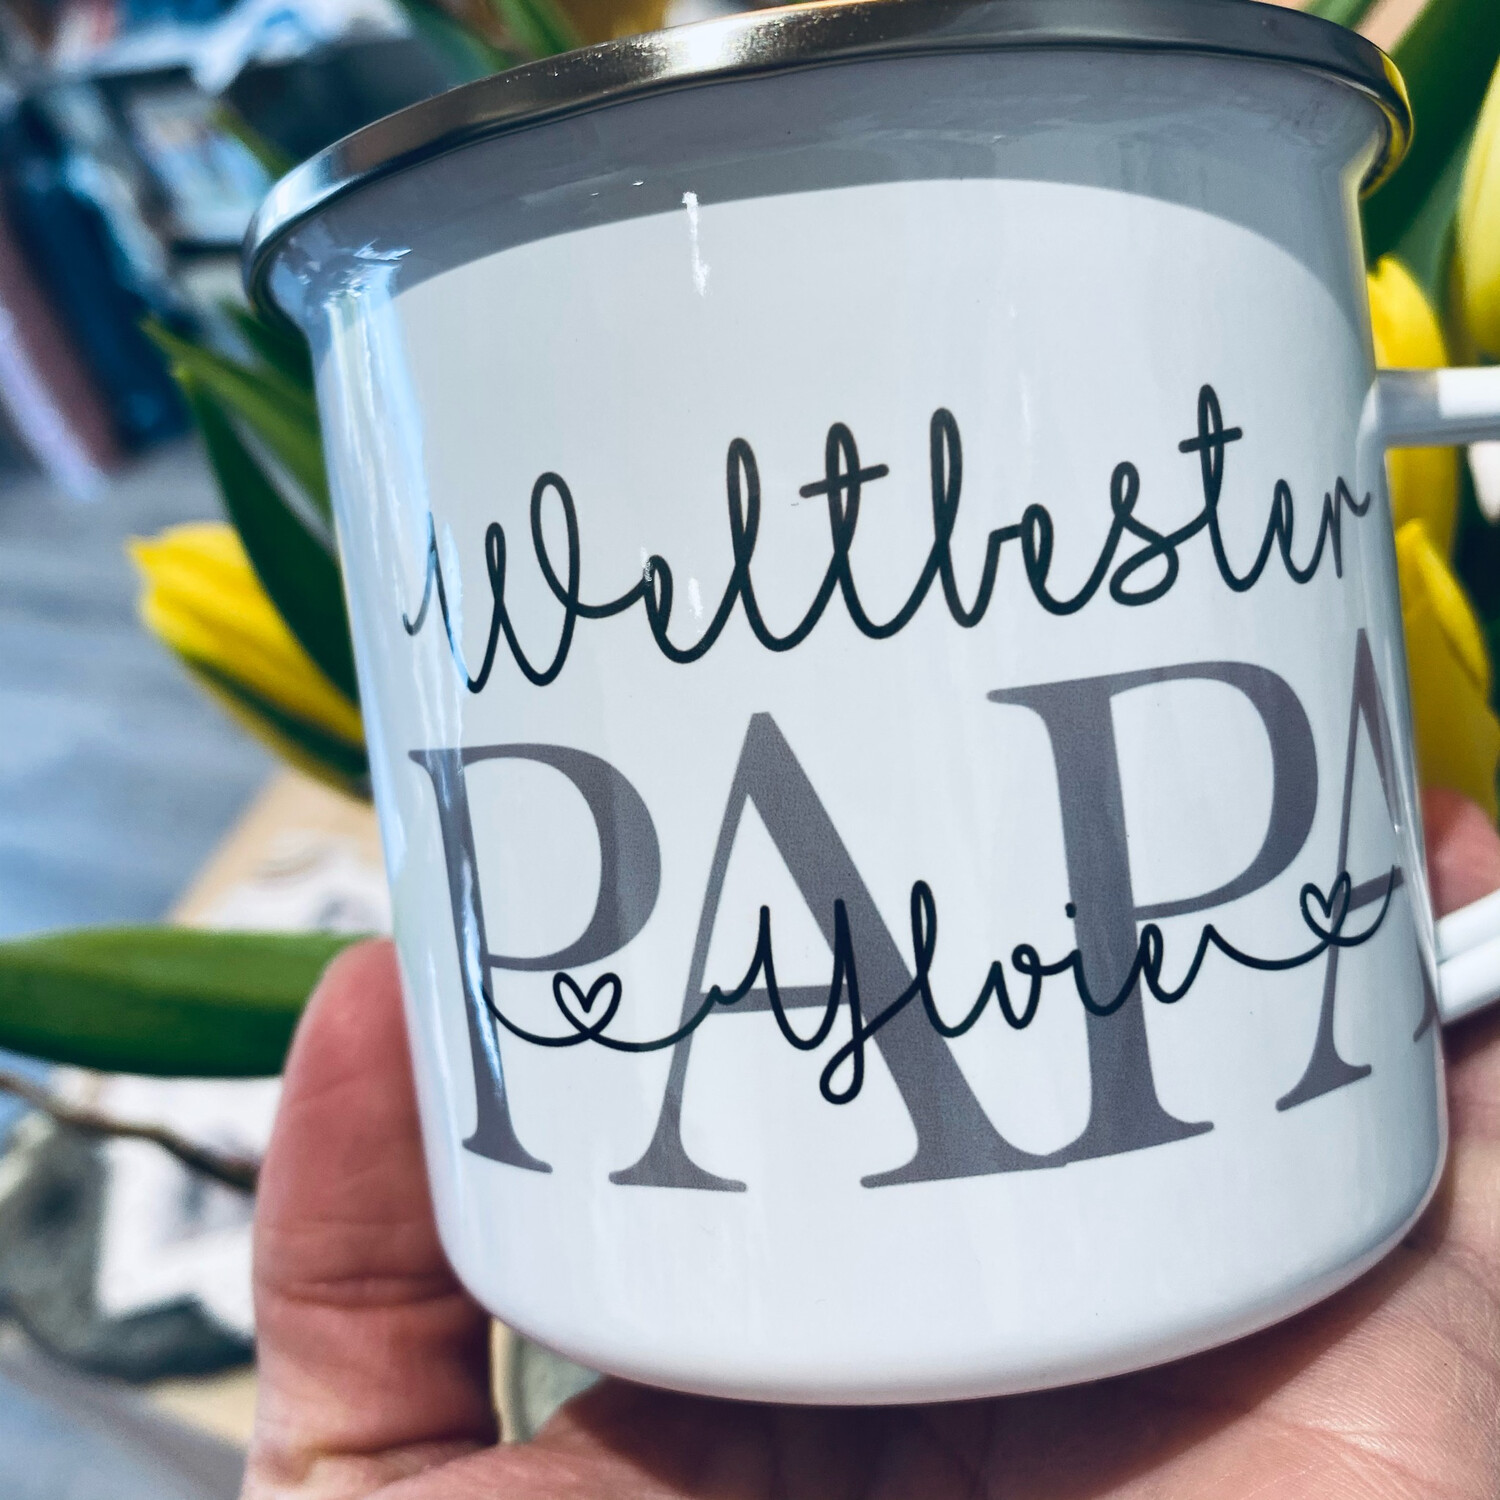 Emaille Tasse WELTBESTER PAPA